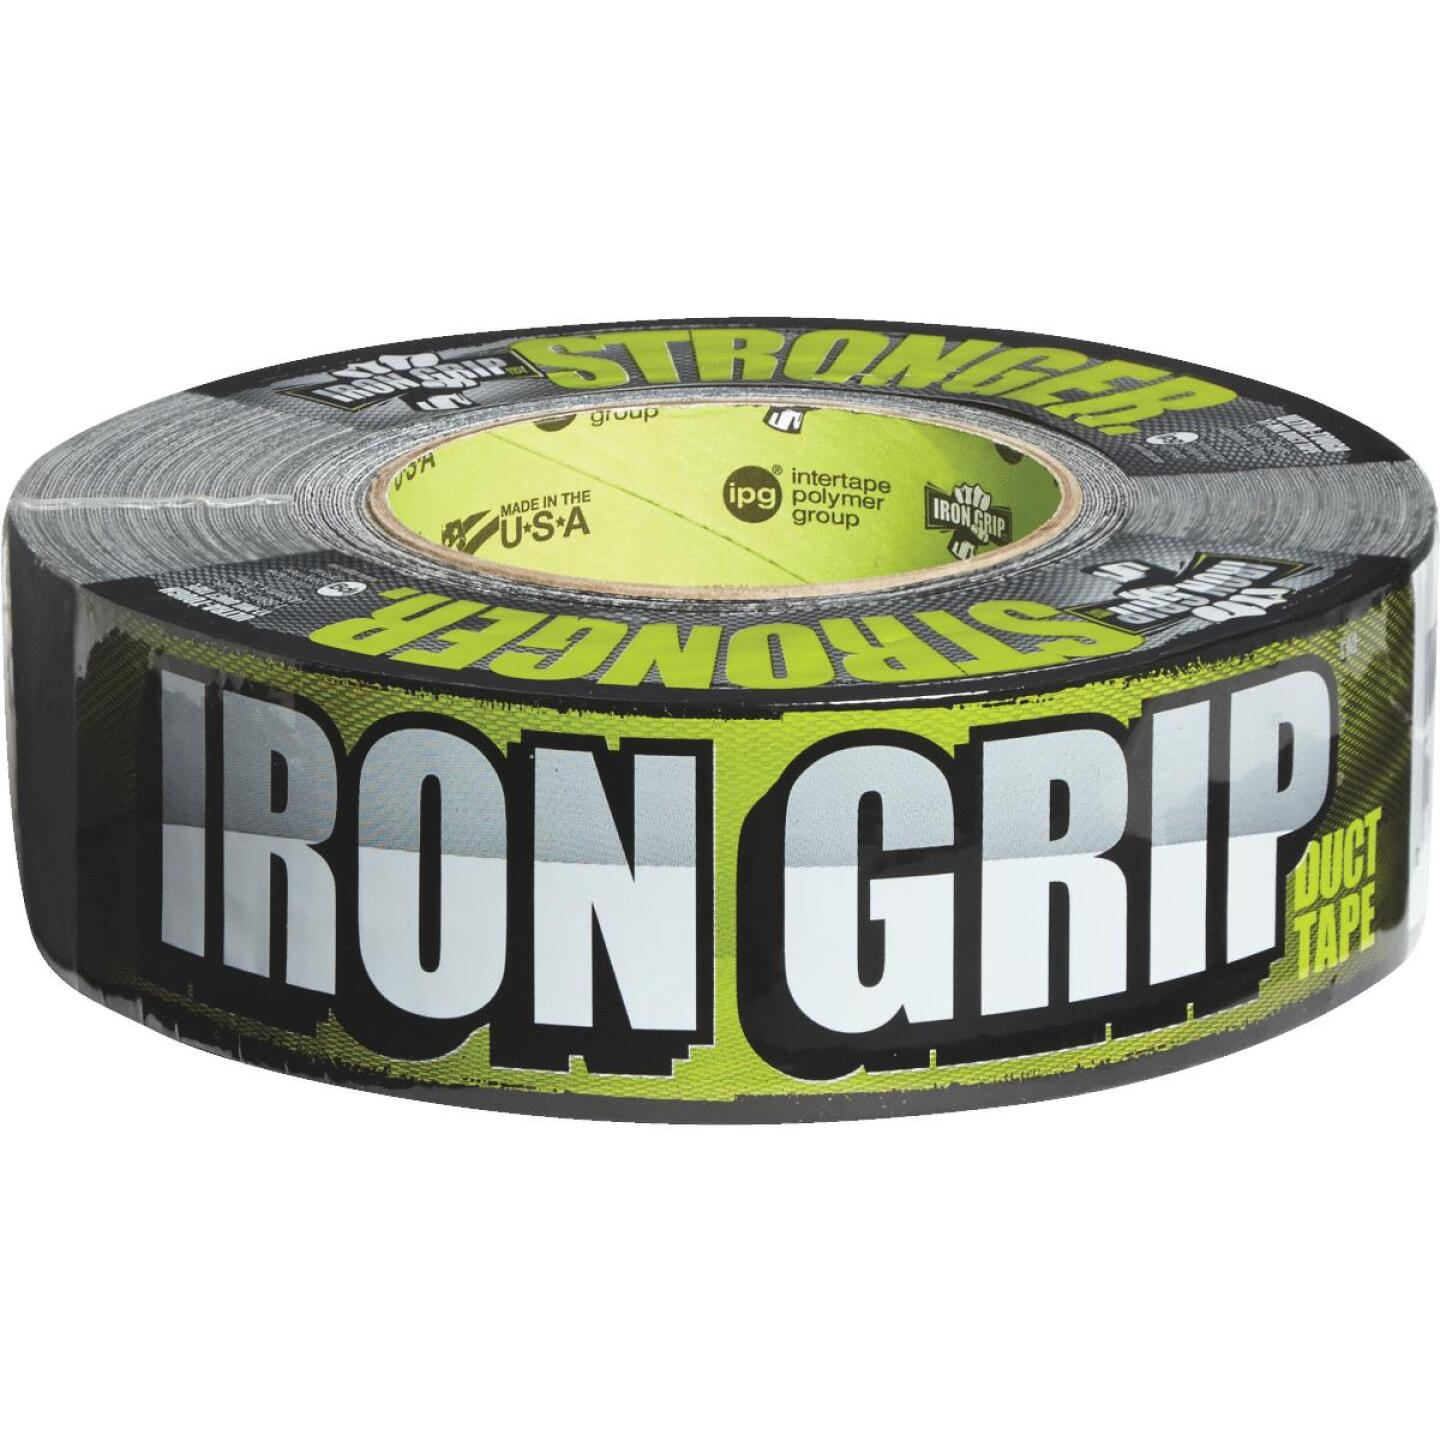 Intertape IRONGRIP 1.88 In. x 35 Yd. Duct Tape, Black Image 4